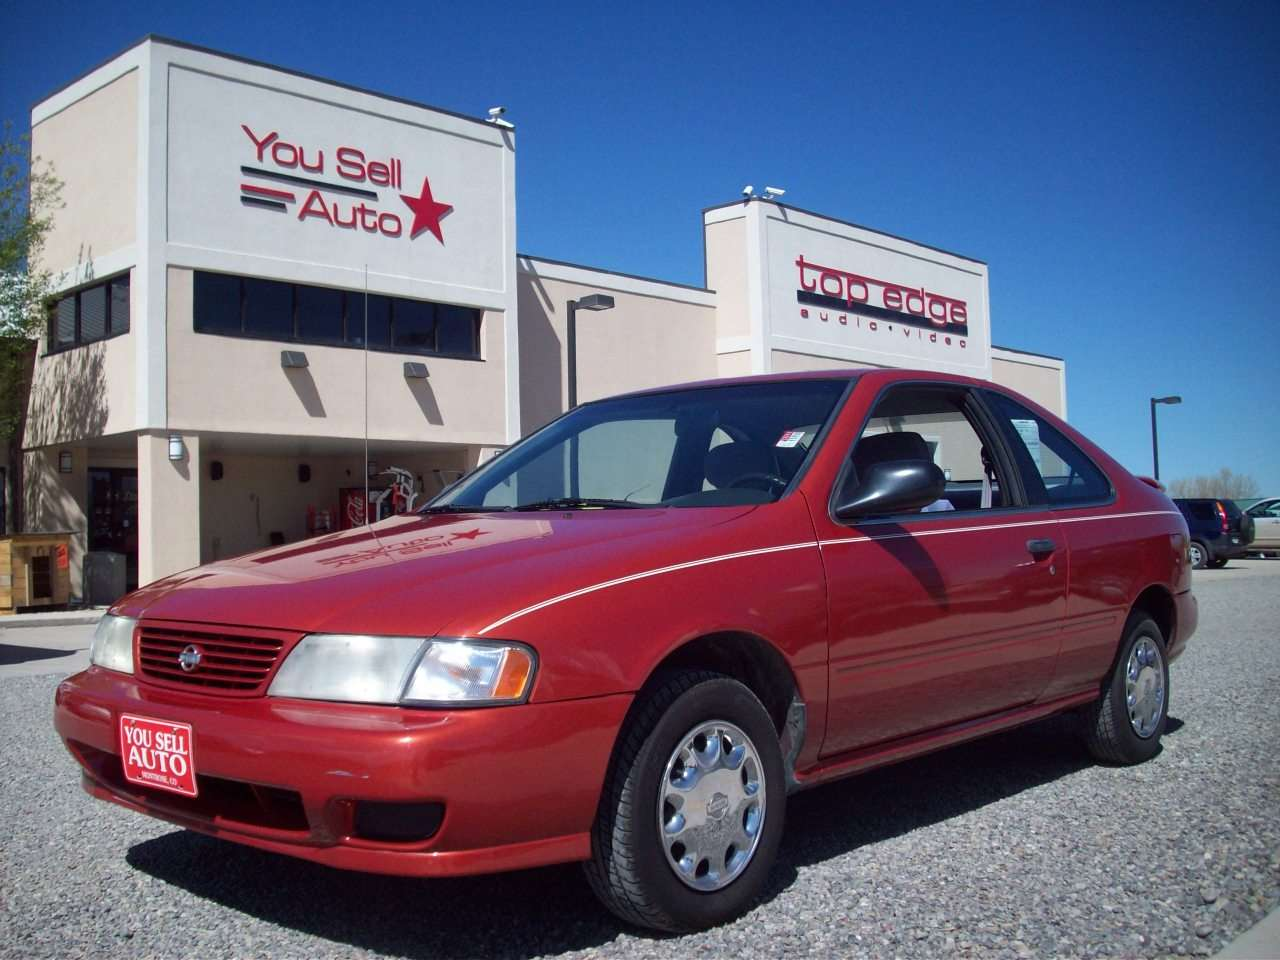 1997 nissan 200sx 2 997 35 mpg hwy you sell auto. Black Bedroom Furniture Sets. Home Design Ideas